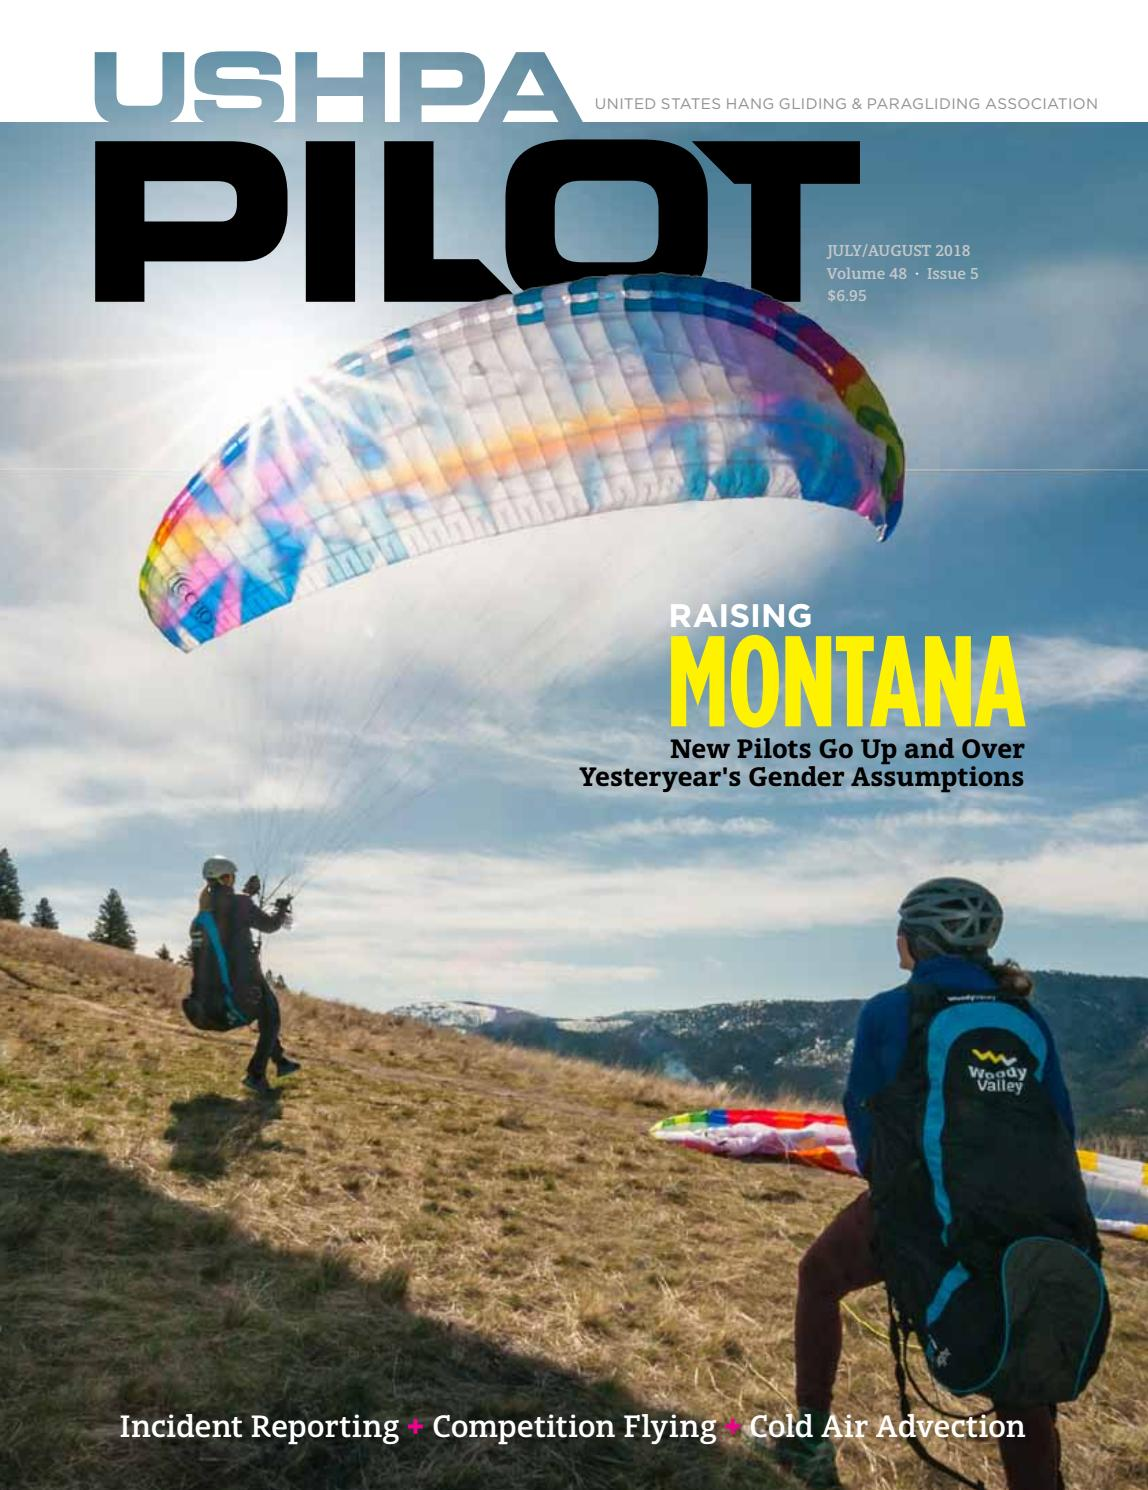 USHPA Pilot Vol48-Iss5 Jul-Aug 2018 by US Hang Gliding & Paragliding